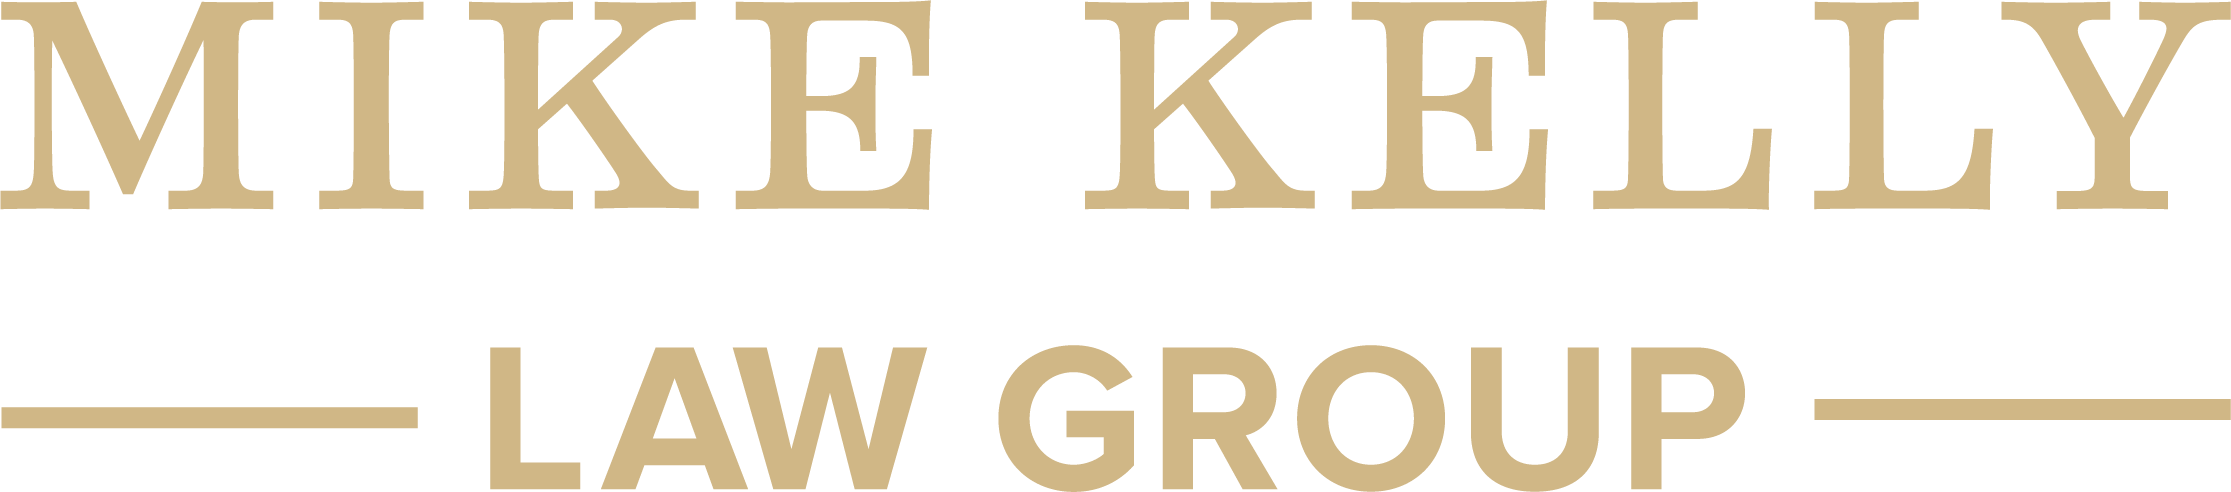 Mike Kelly Law Group